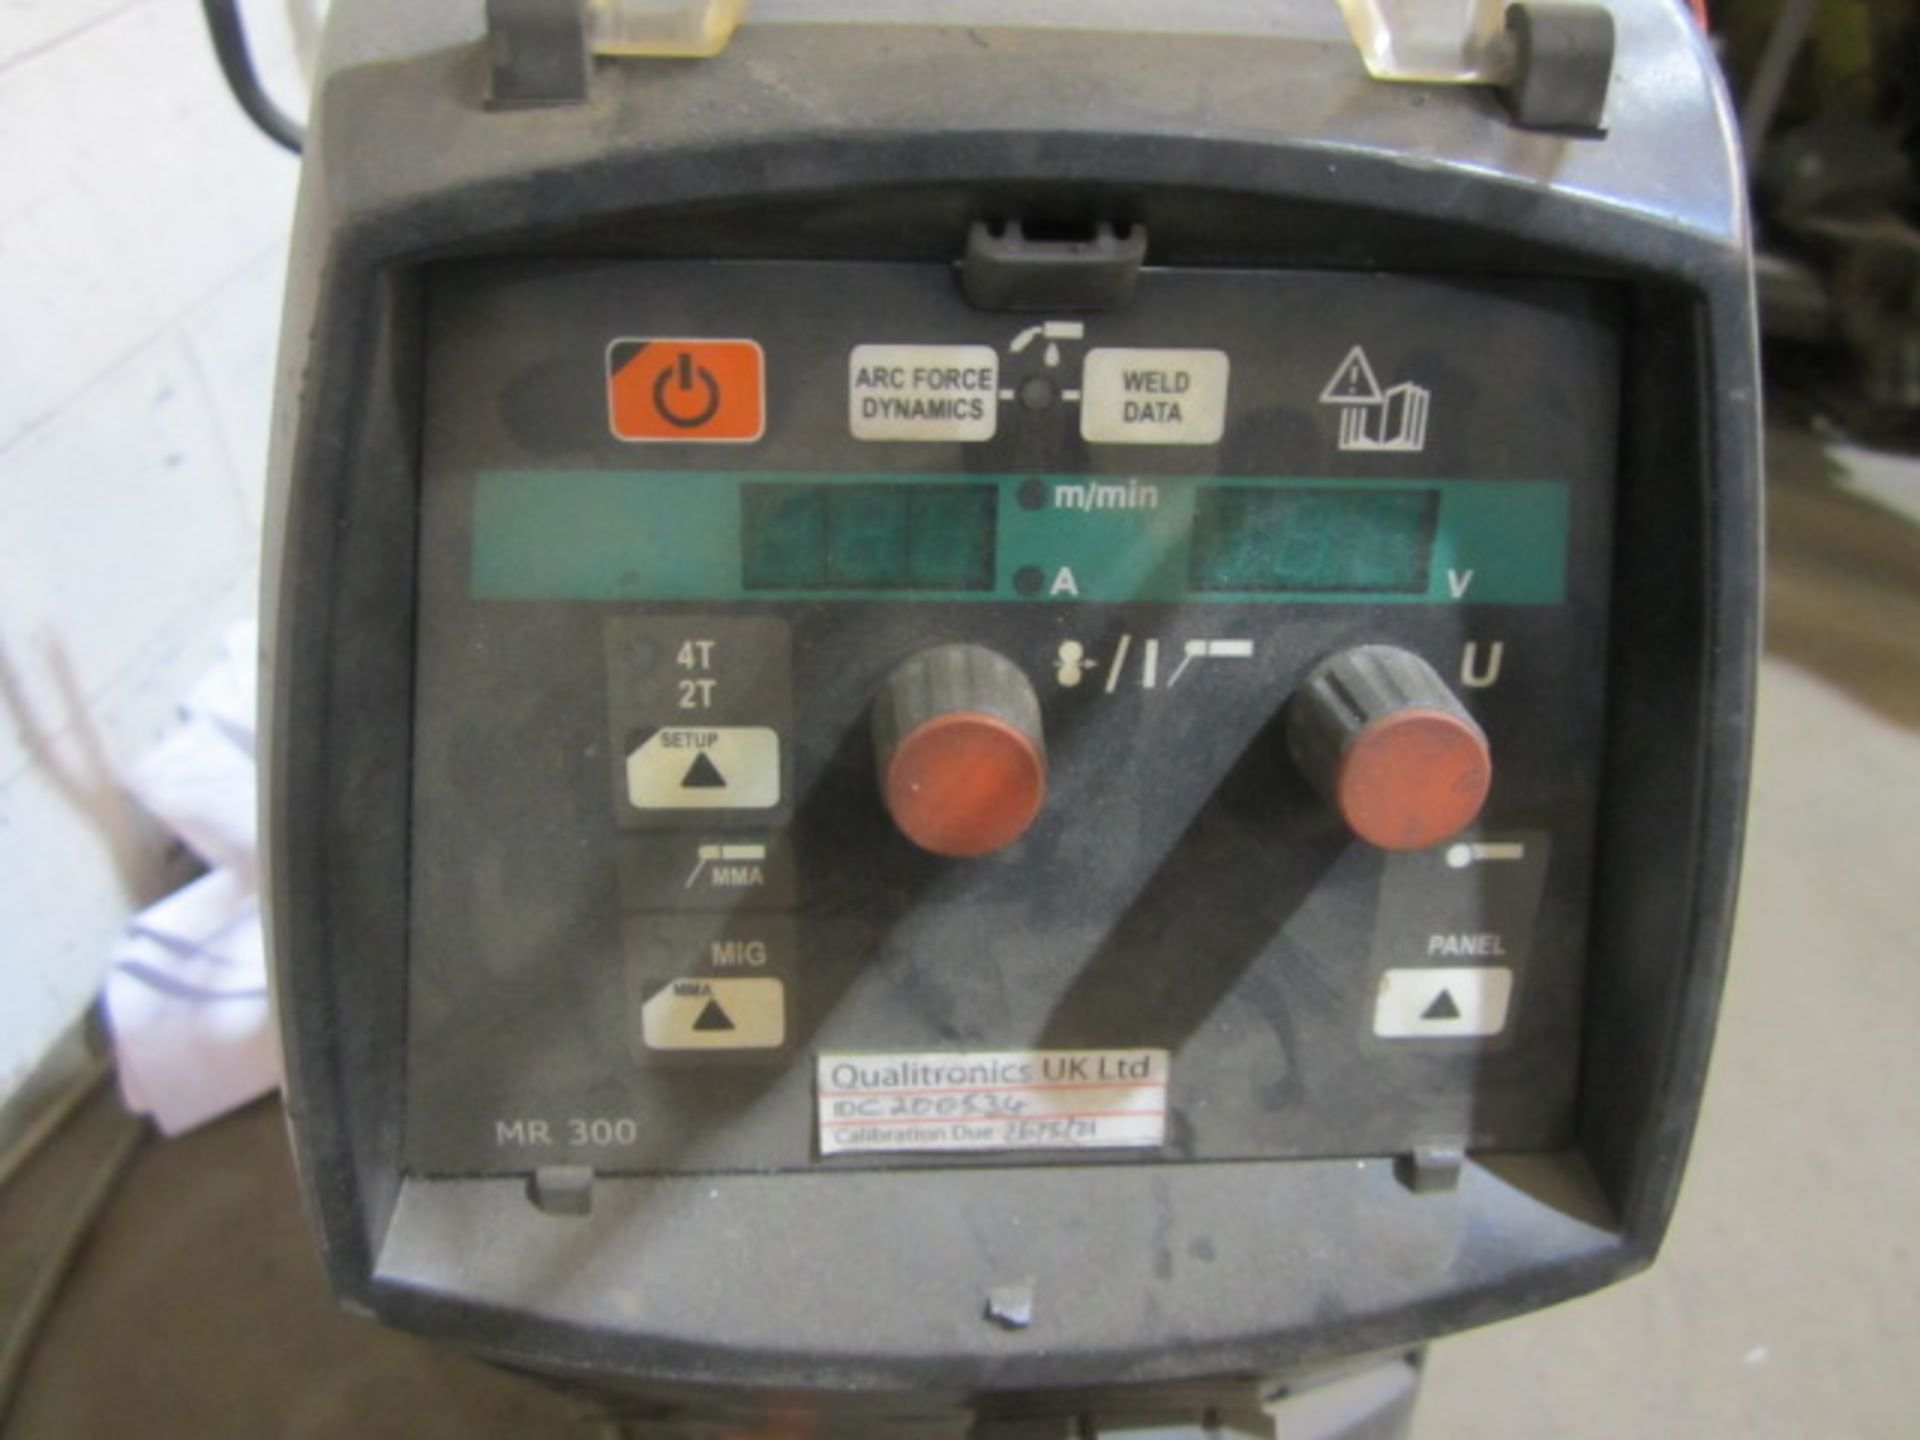 Kemppi Fast Mig M420 mig welder, serial no. 2694678, with Fast Mig MXF65 wire feeder, serial no. - Image 3 of 7